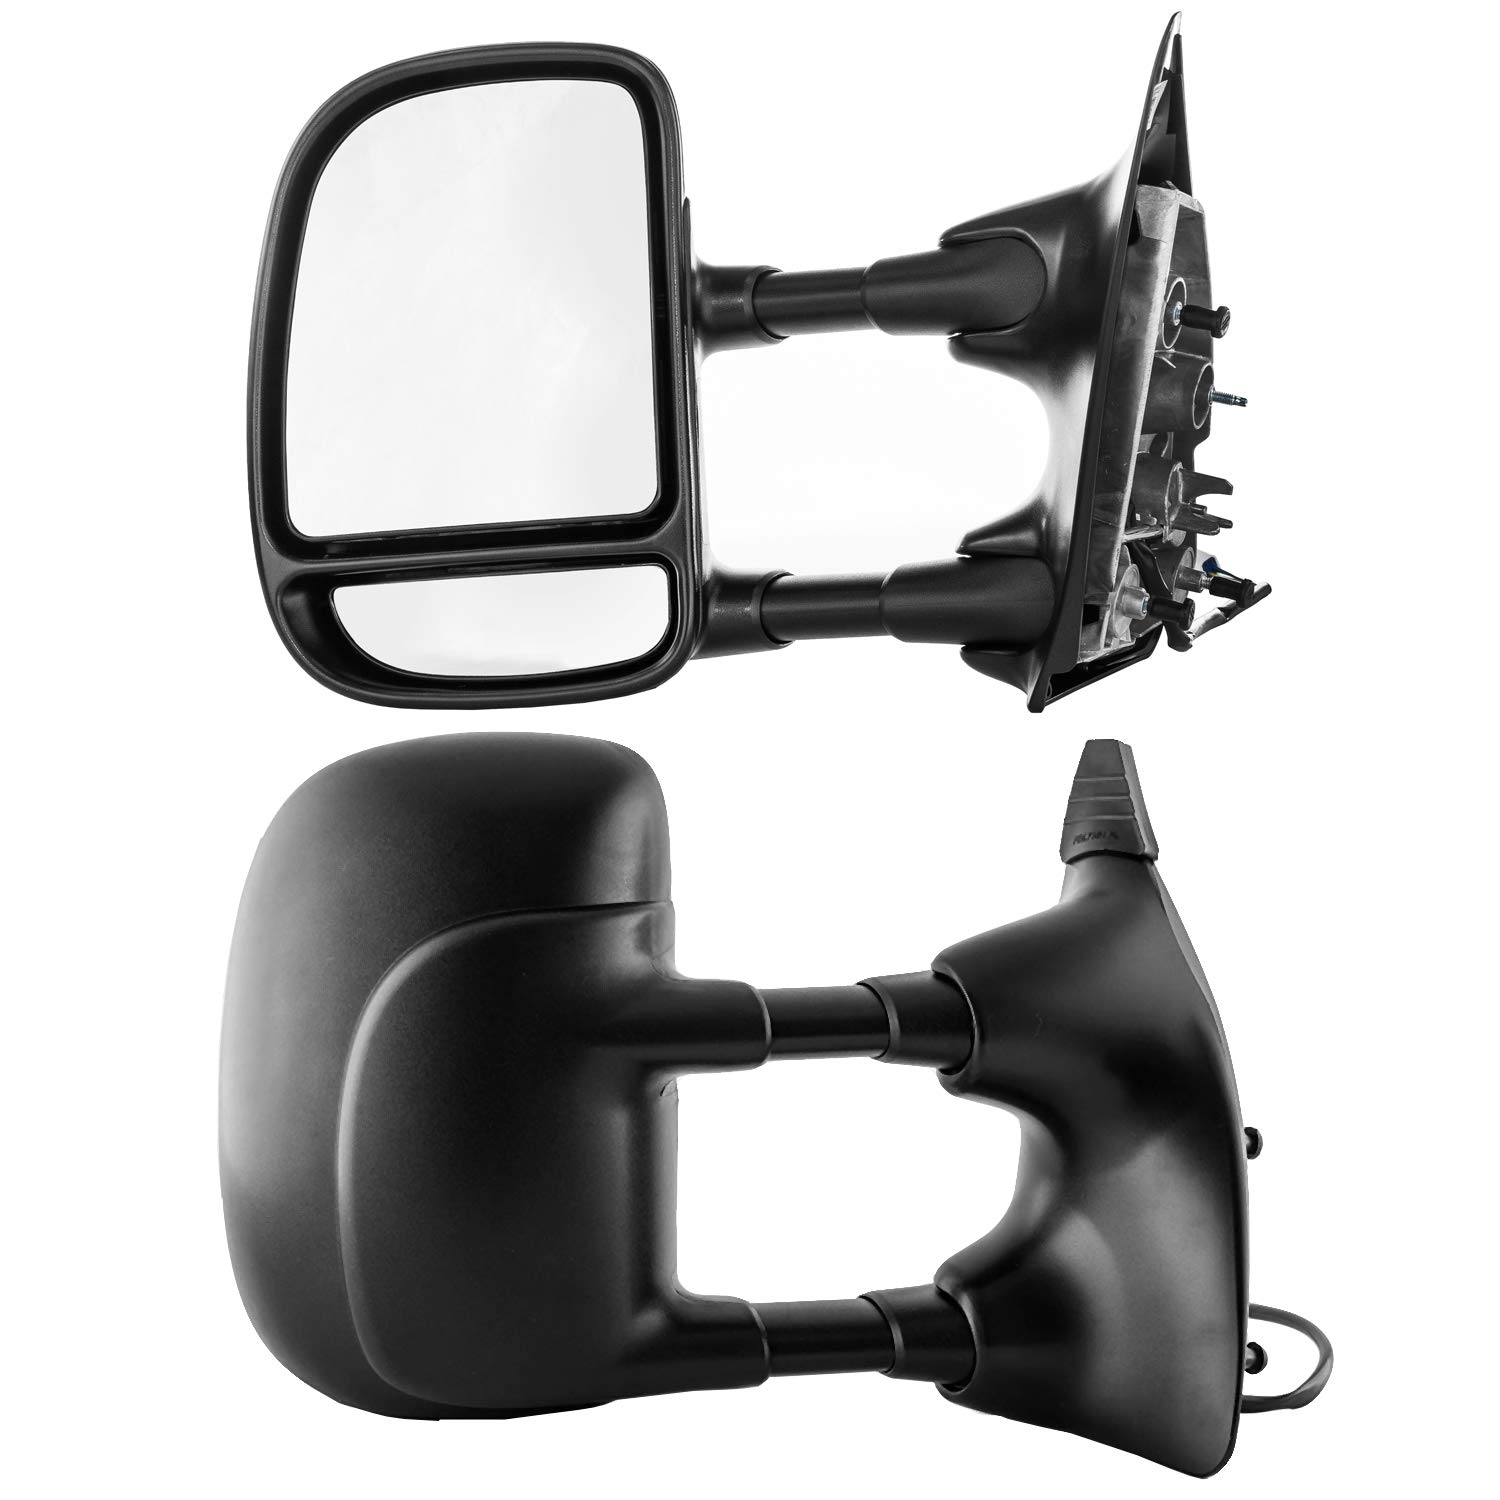 Driver and Passenger Side Towing Mirrors for Ford Super Duty F-250, F-350 (1999 2000 2001 2002 2003) Textured Non-Heated Power Adjustment Folding Telescopic Door Rear View Replacement FO1321196